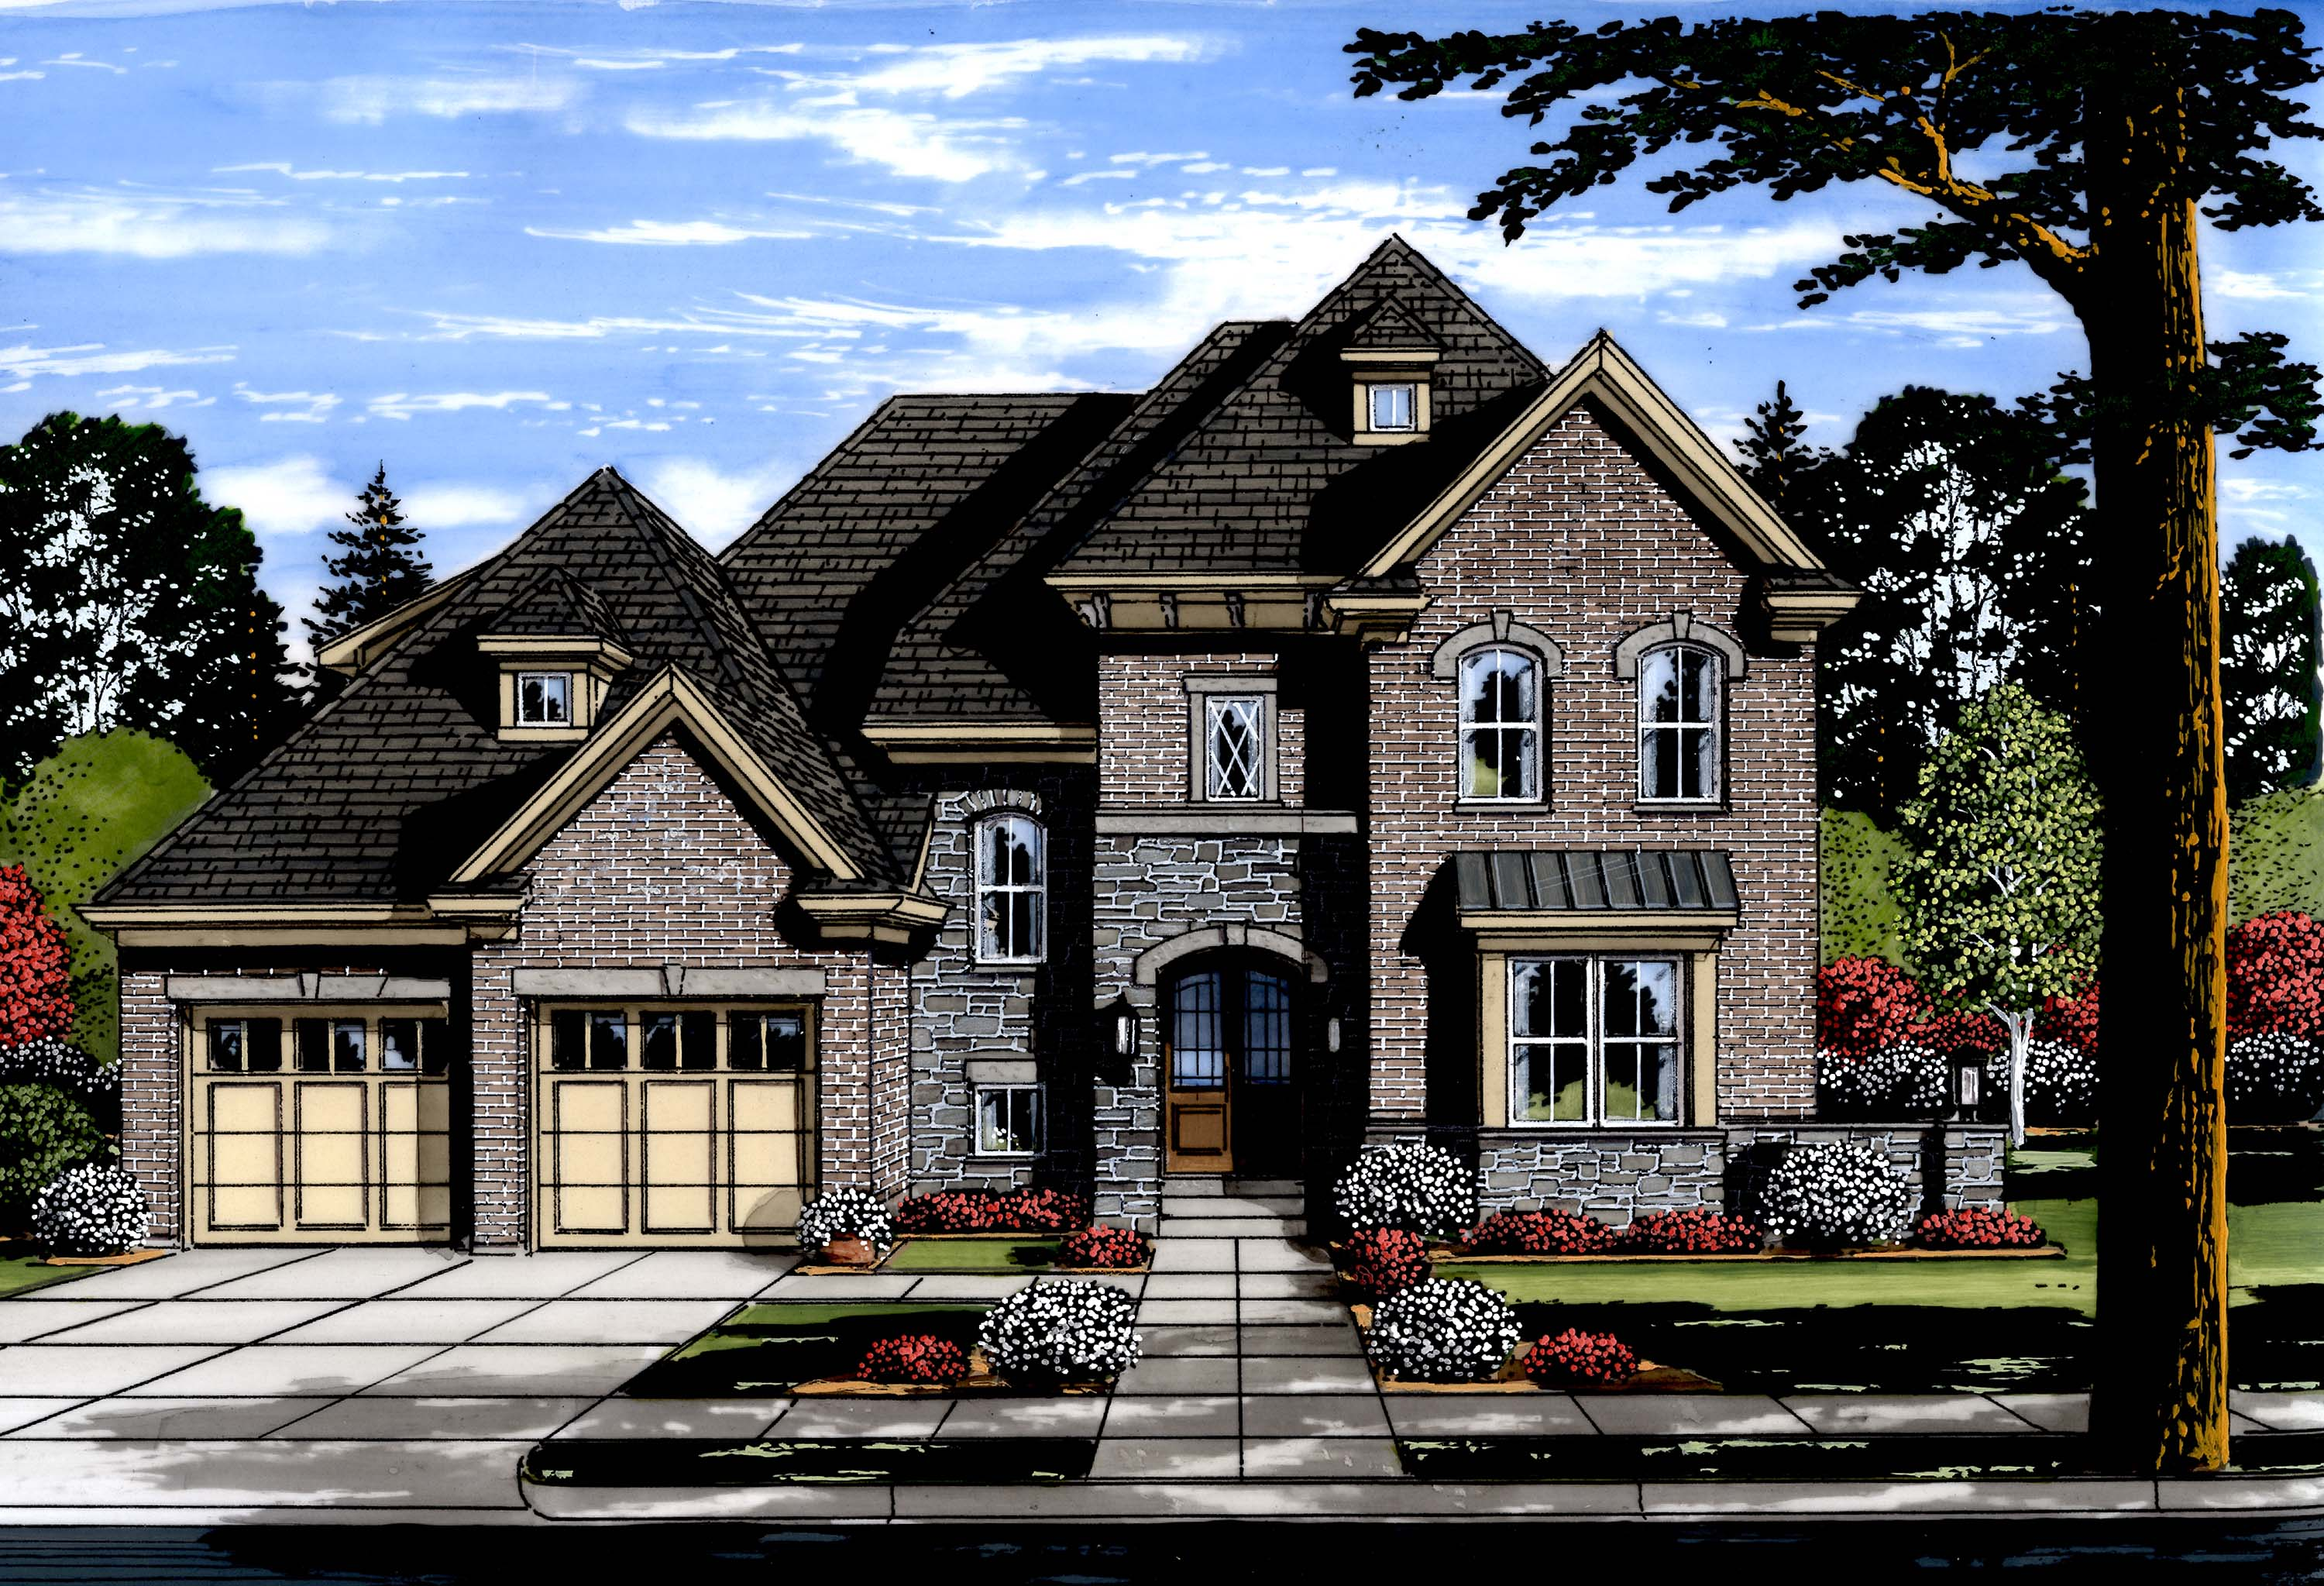 Home Plans: Luxury House Plan #169-1120: 4 Bedrm, 3287 Sq Ft Home